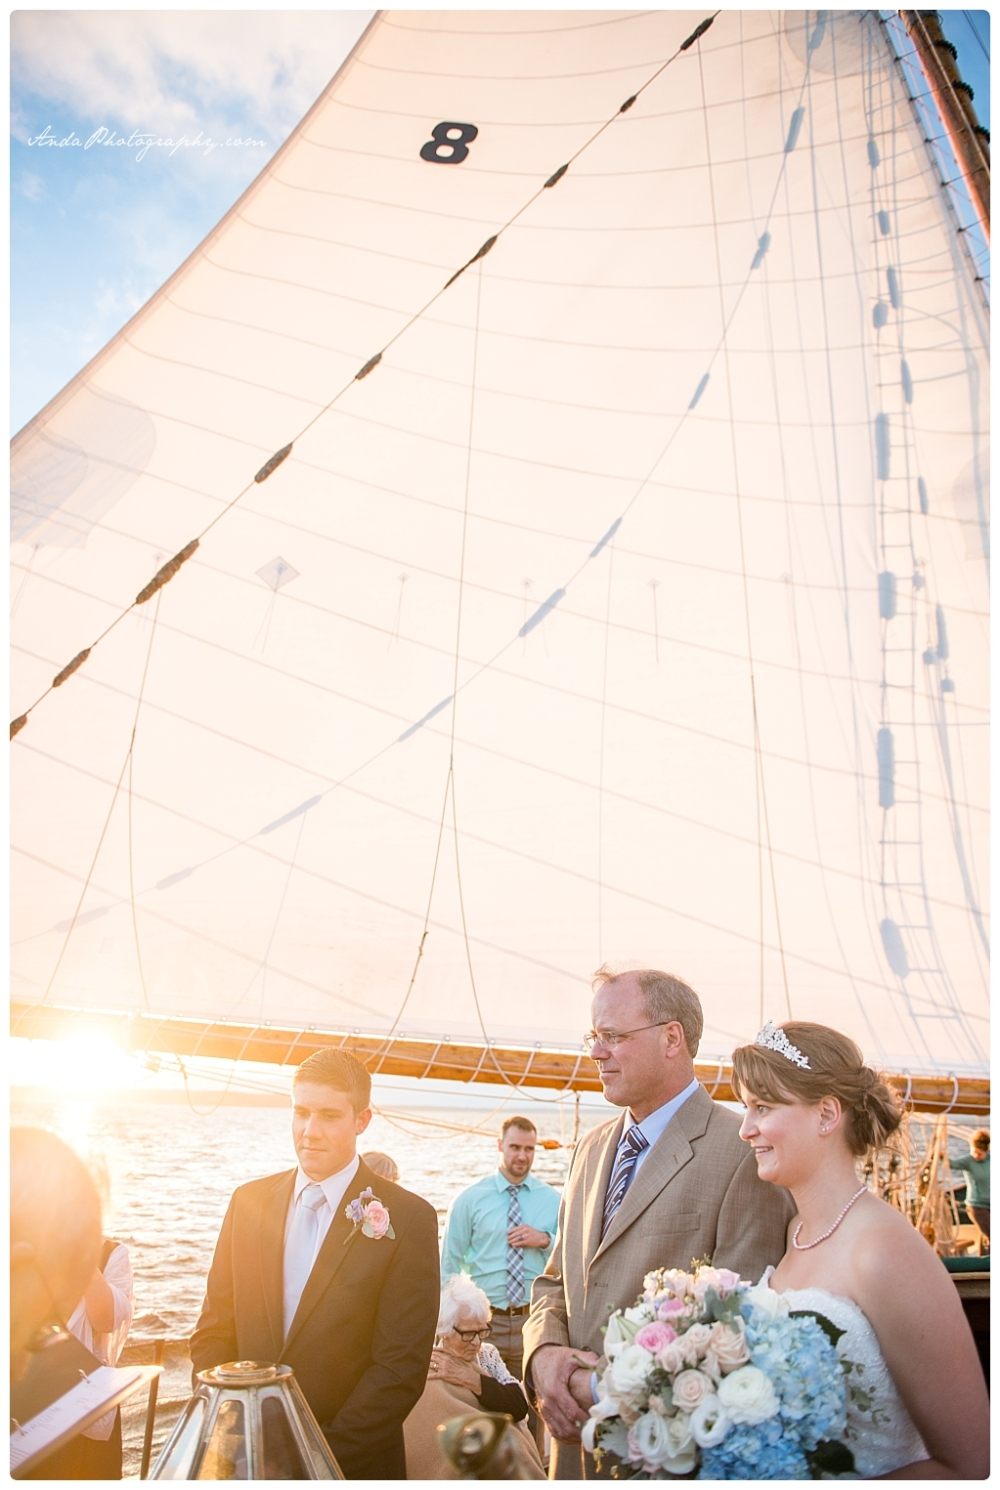 Anda Photography Bellingham wedding photographer seattle wedding photographer Schooner Zodiak Wedding photos_0037